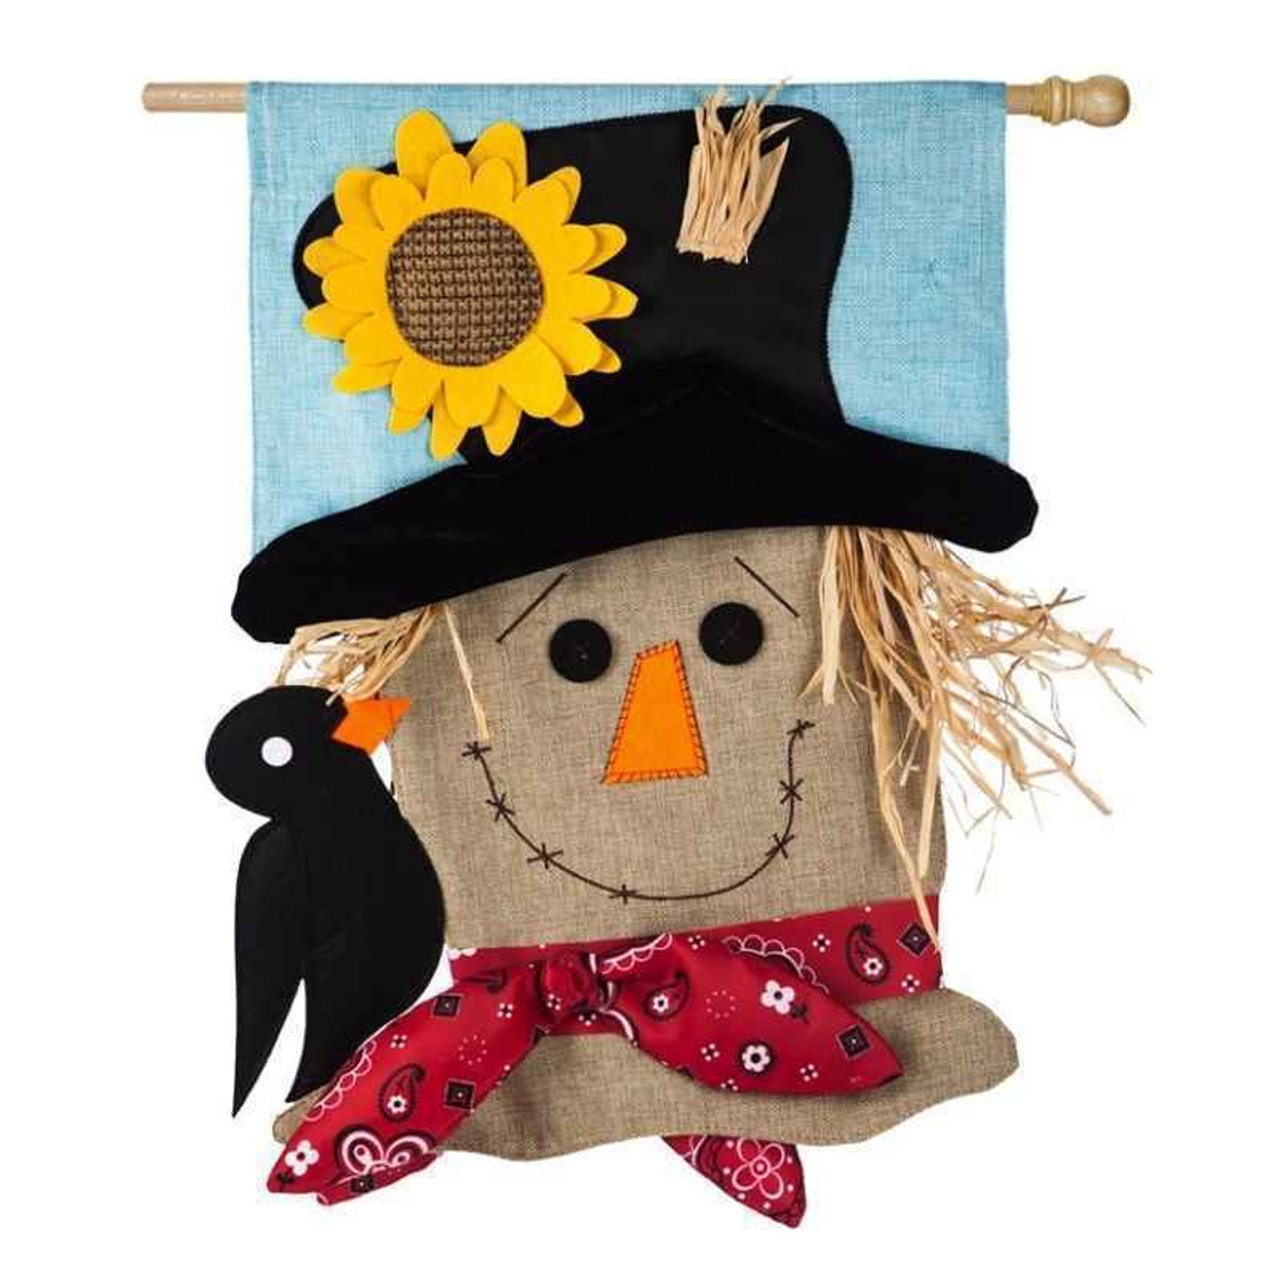 """The Scarecrow Applique house flag measures 44"""" long by 28"""" wide.   It is a shaped burlap house flag featuring a scarecrow bust with a black crow perched on its shoulder.   The  black eyes, orange rectangular nose,  bright yellow sunflower decorating his black hat and crow are felt.  A red bandana around his neck is an actual bandana.  He has faux straw hair and a brown cross-stitched smile."""